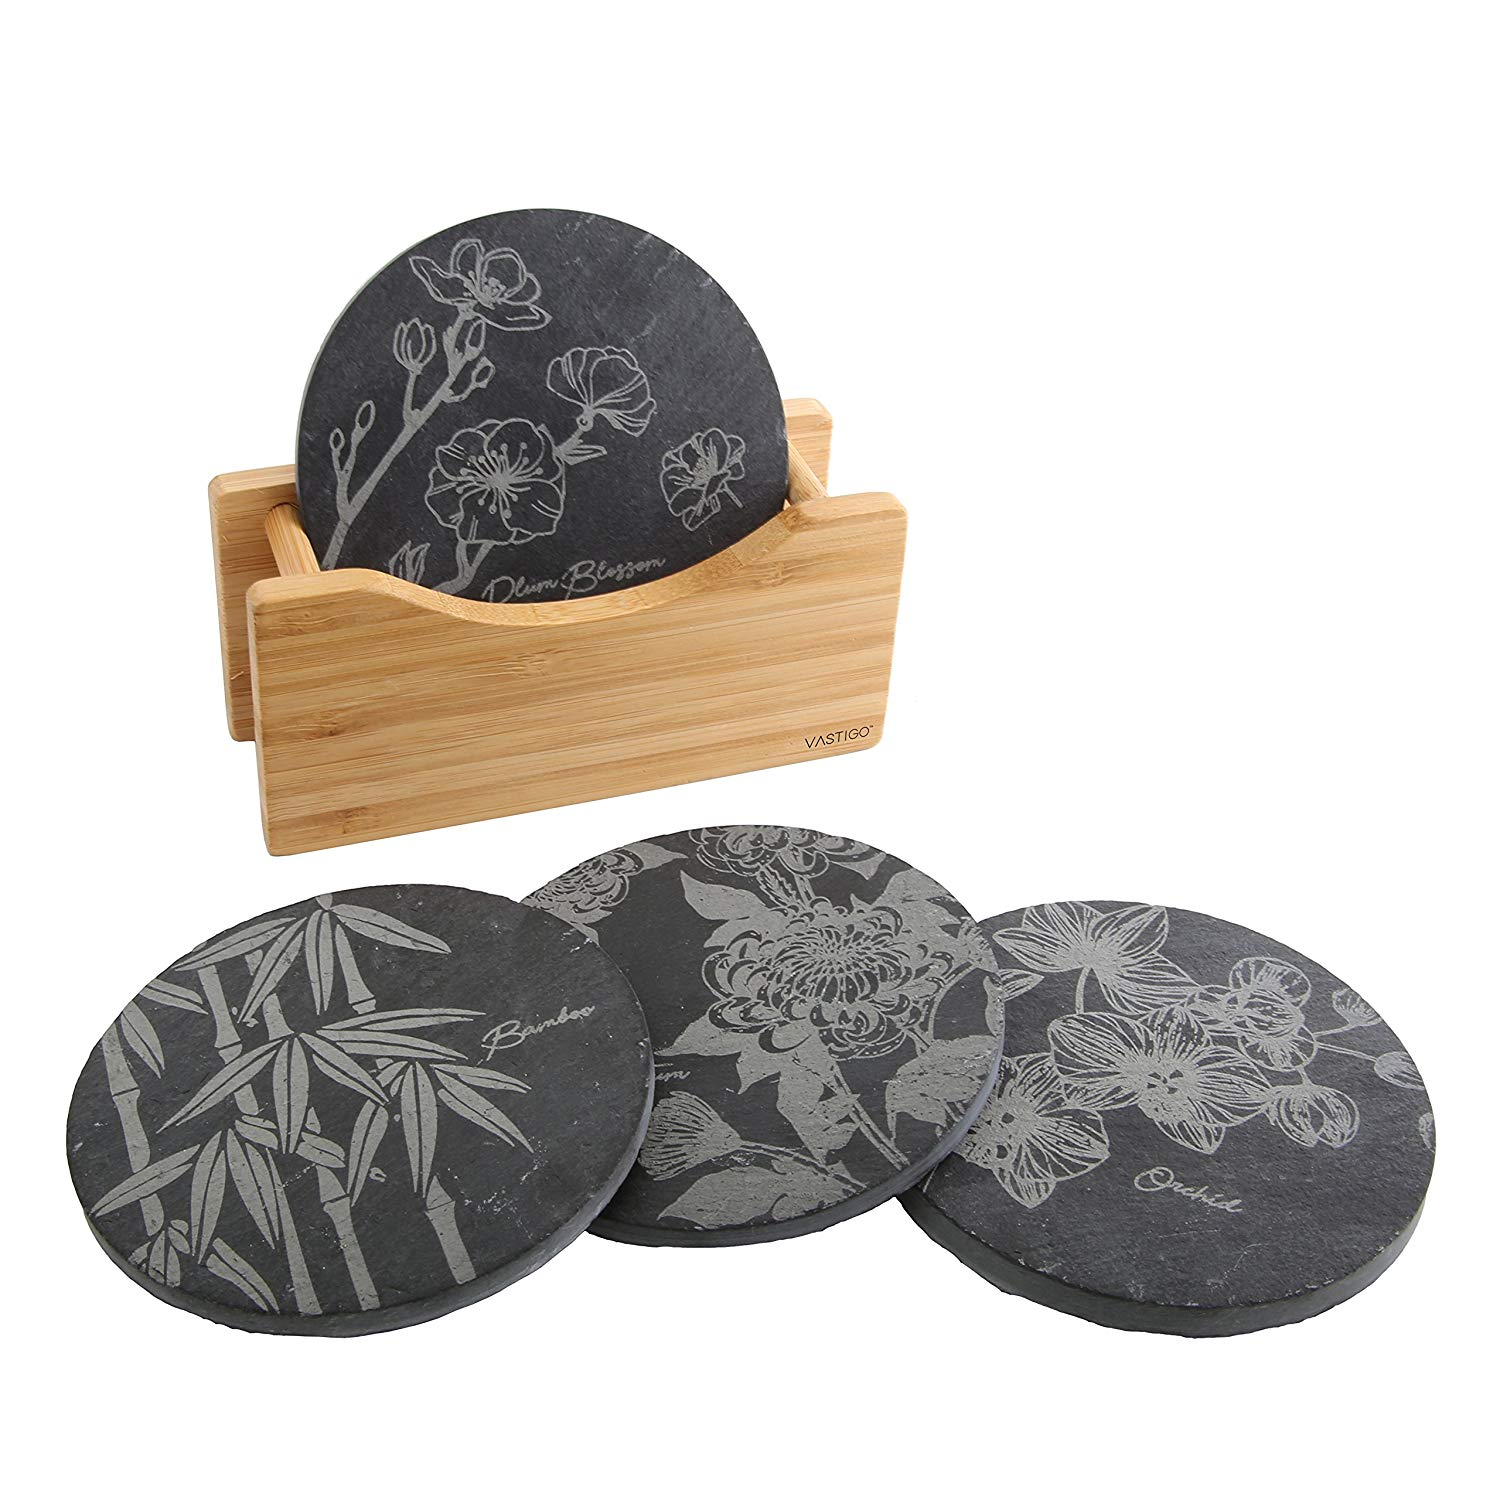 Vastigo Circle Shaped Slate Coasters in Bamboo Holder w/Flower Designs of Bamboo, Chrysanthemum, Plum Blossom, and Orchid